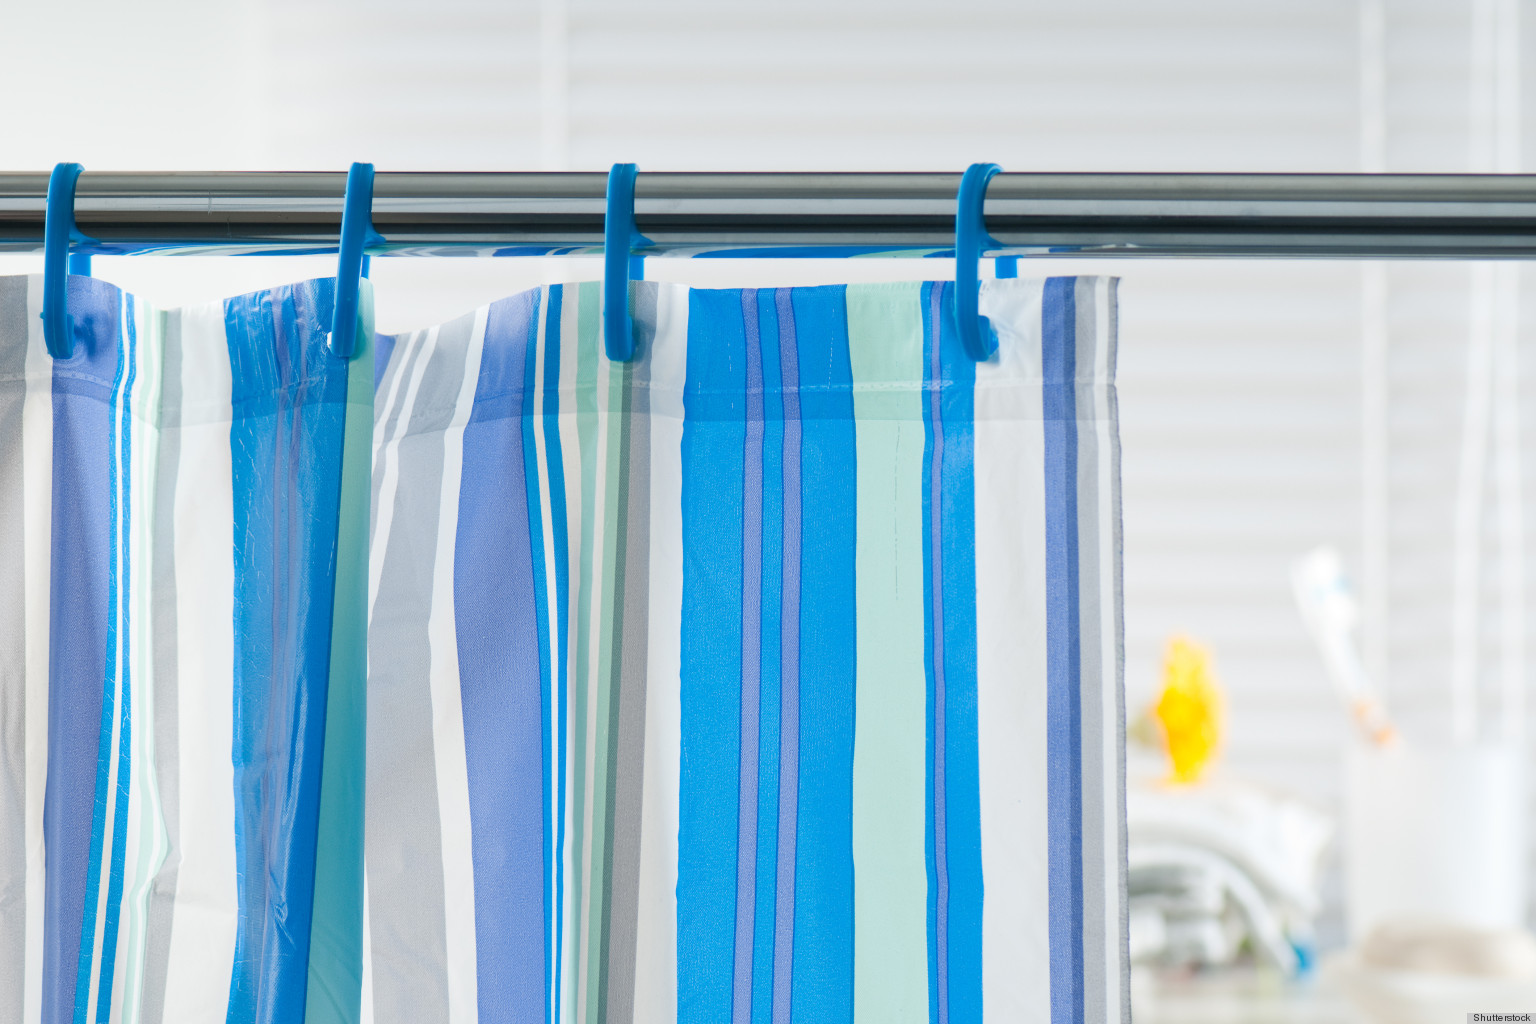 Shower Curtains: Prevent Mildew From Growing On Shower Curtains With...Salt